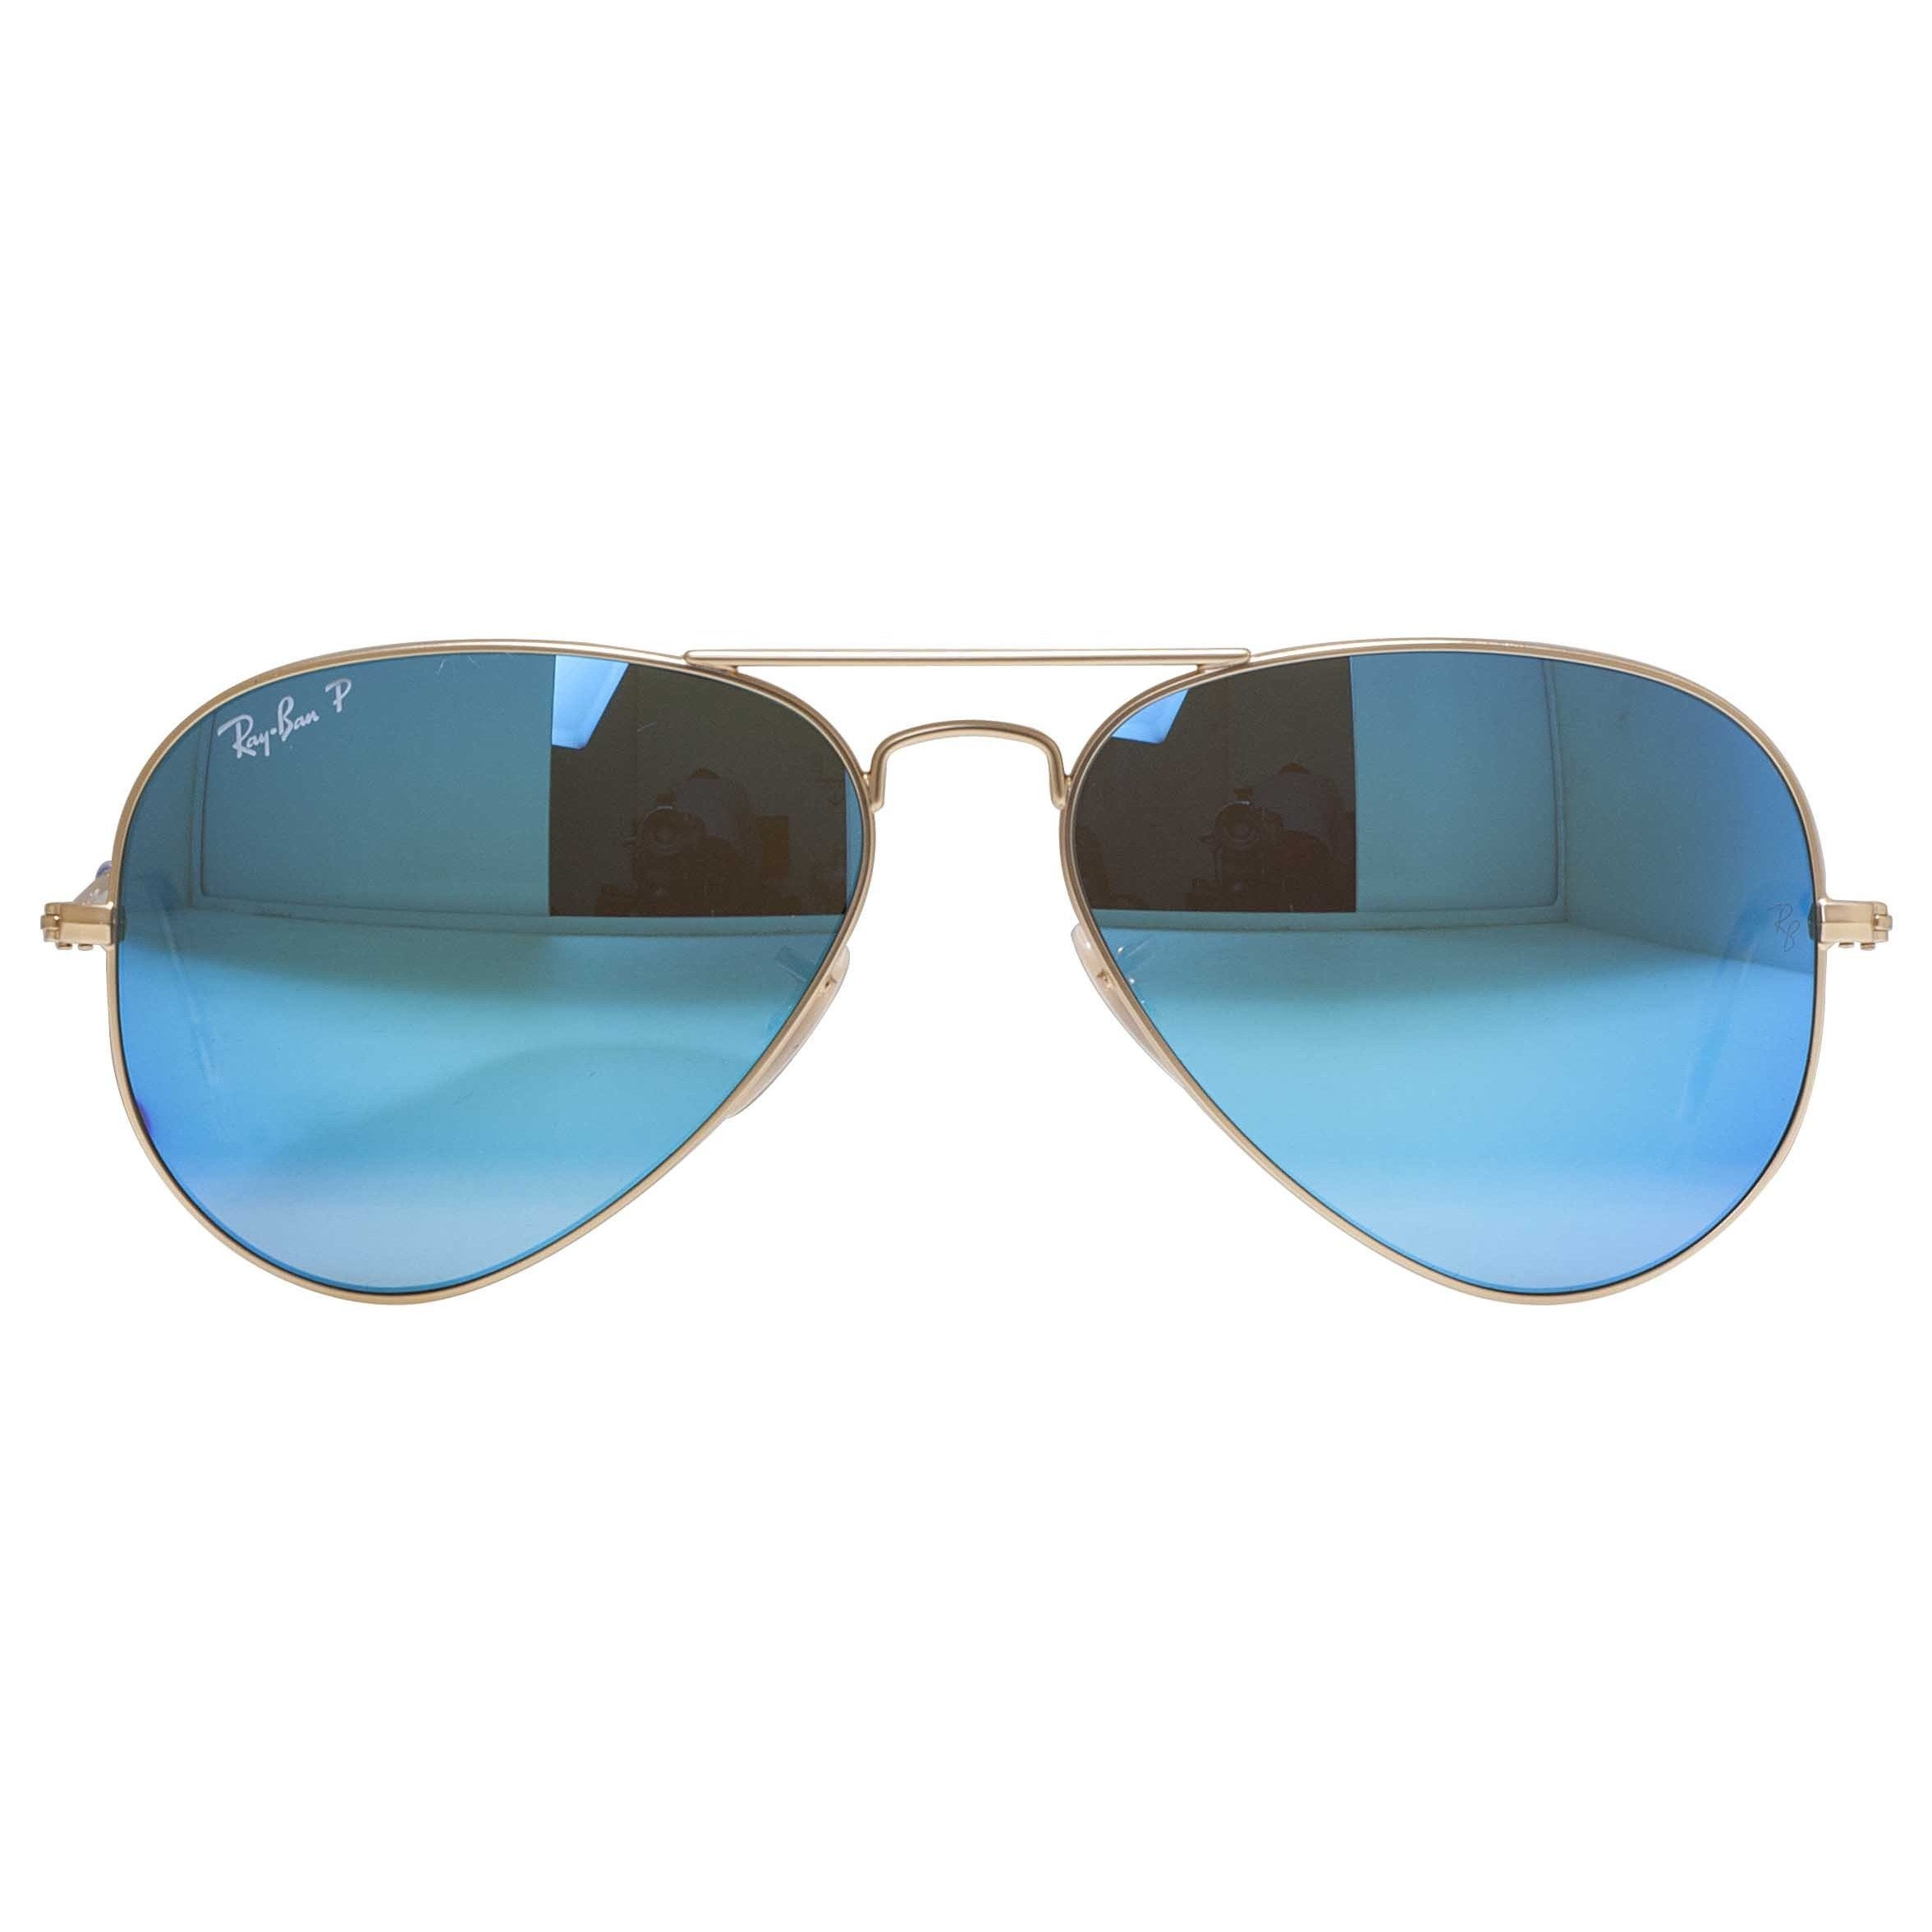 07f29873c01 Shop Ray-Ban Aviator RB3025 Unisex Gold Frame Blue Flash Polarized Lens  Sunglasses - Free Shipping Today - Overstock - 9394181